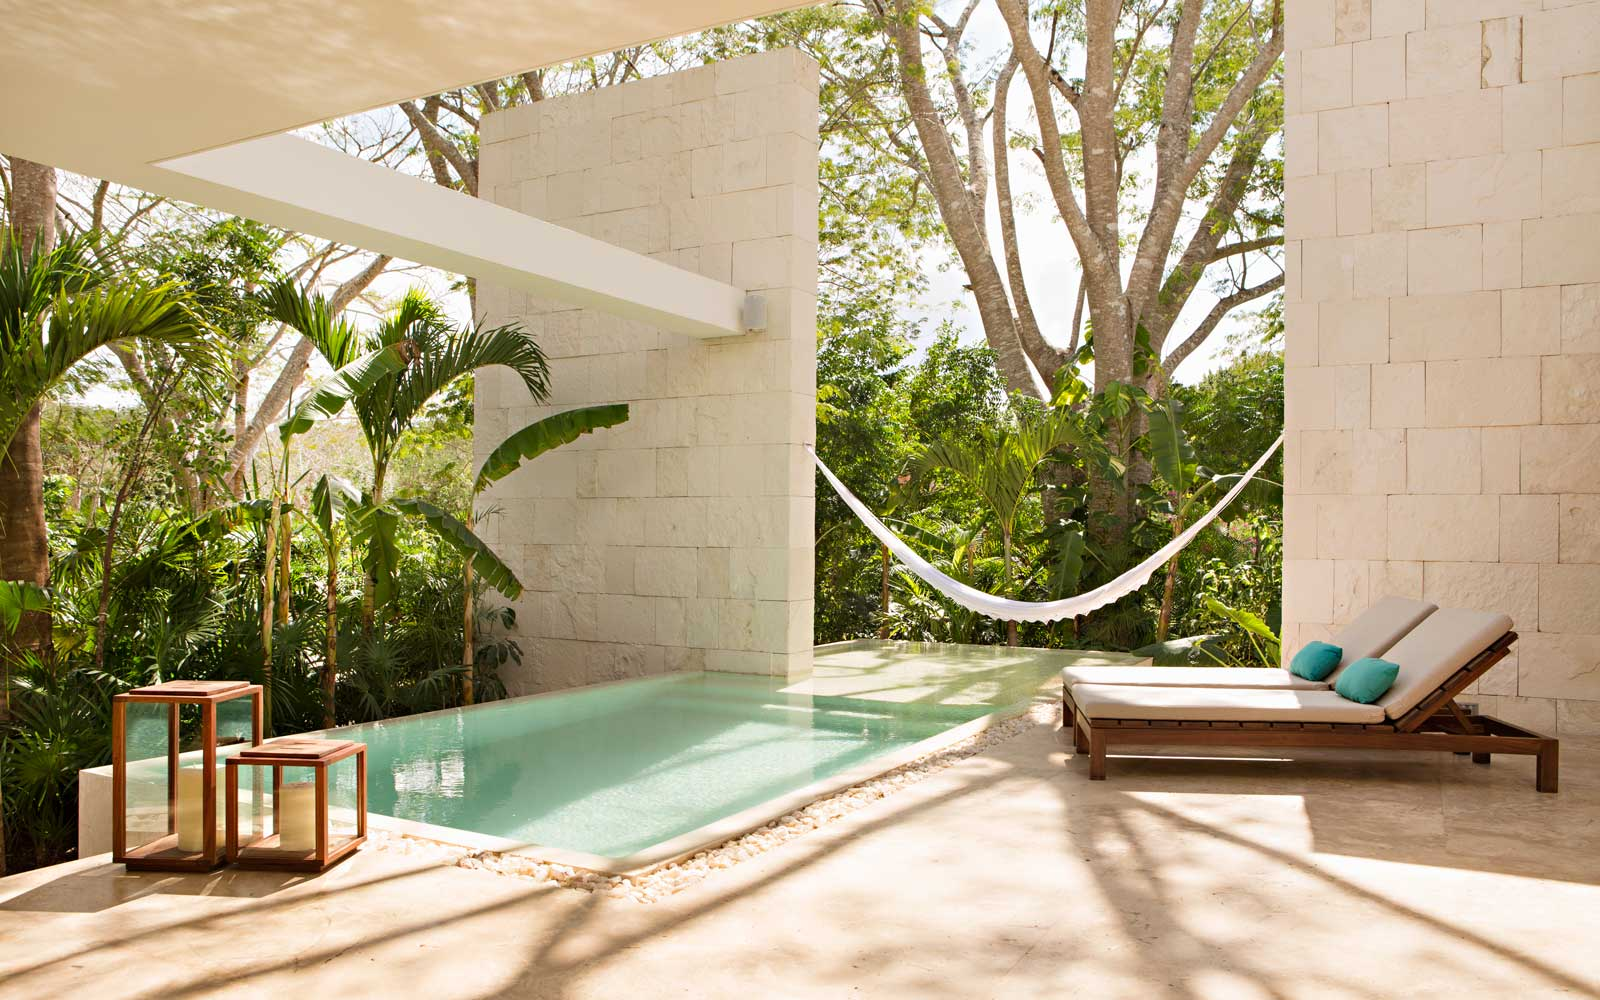 Mexico Resort Named Best-designed Hotel in the World